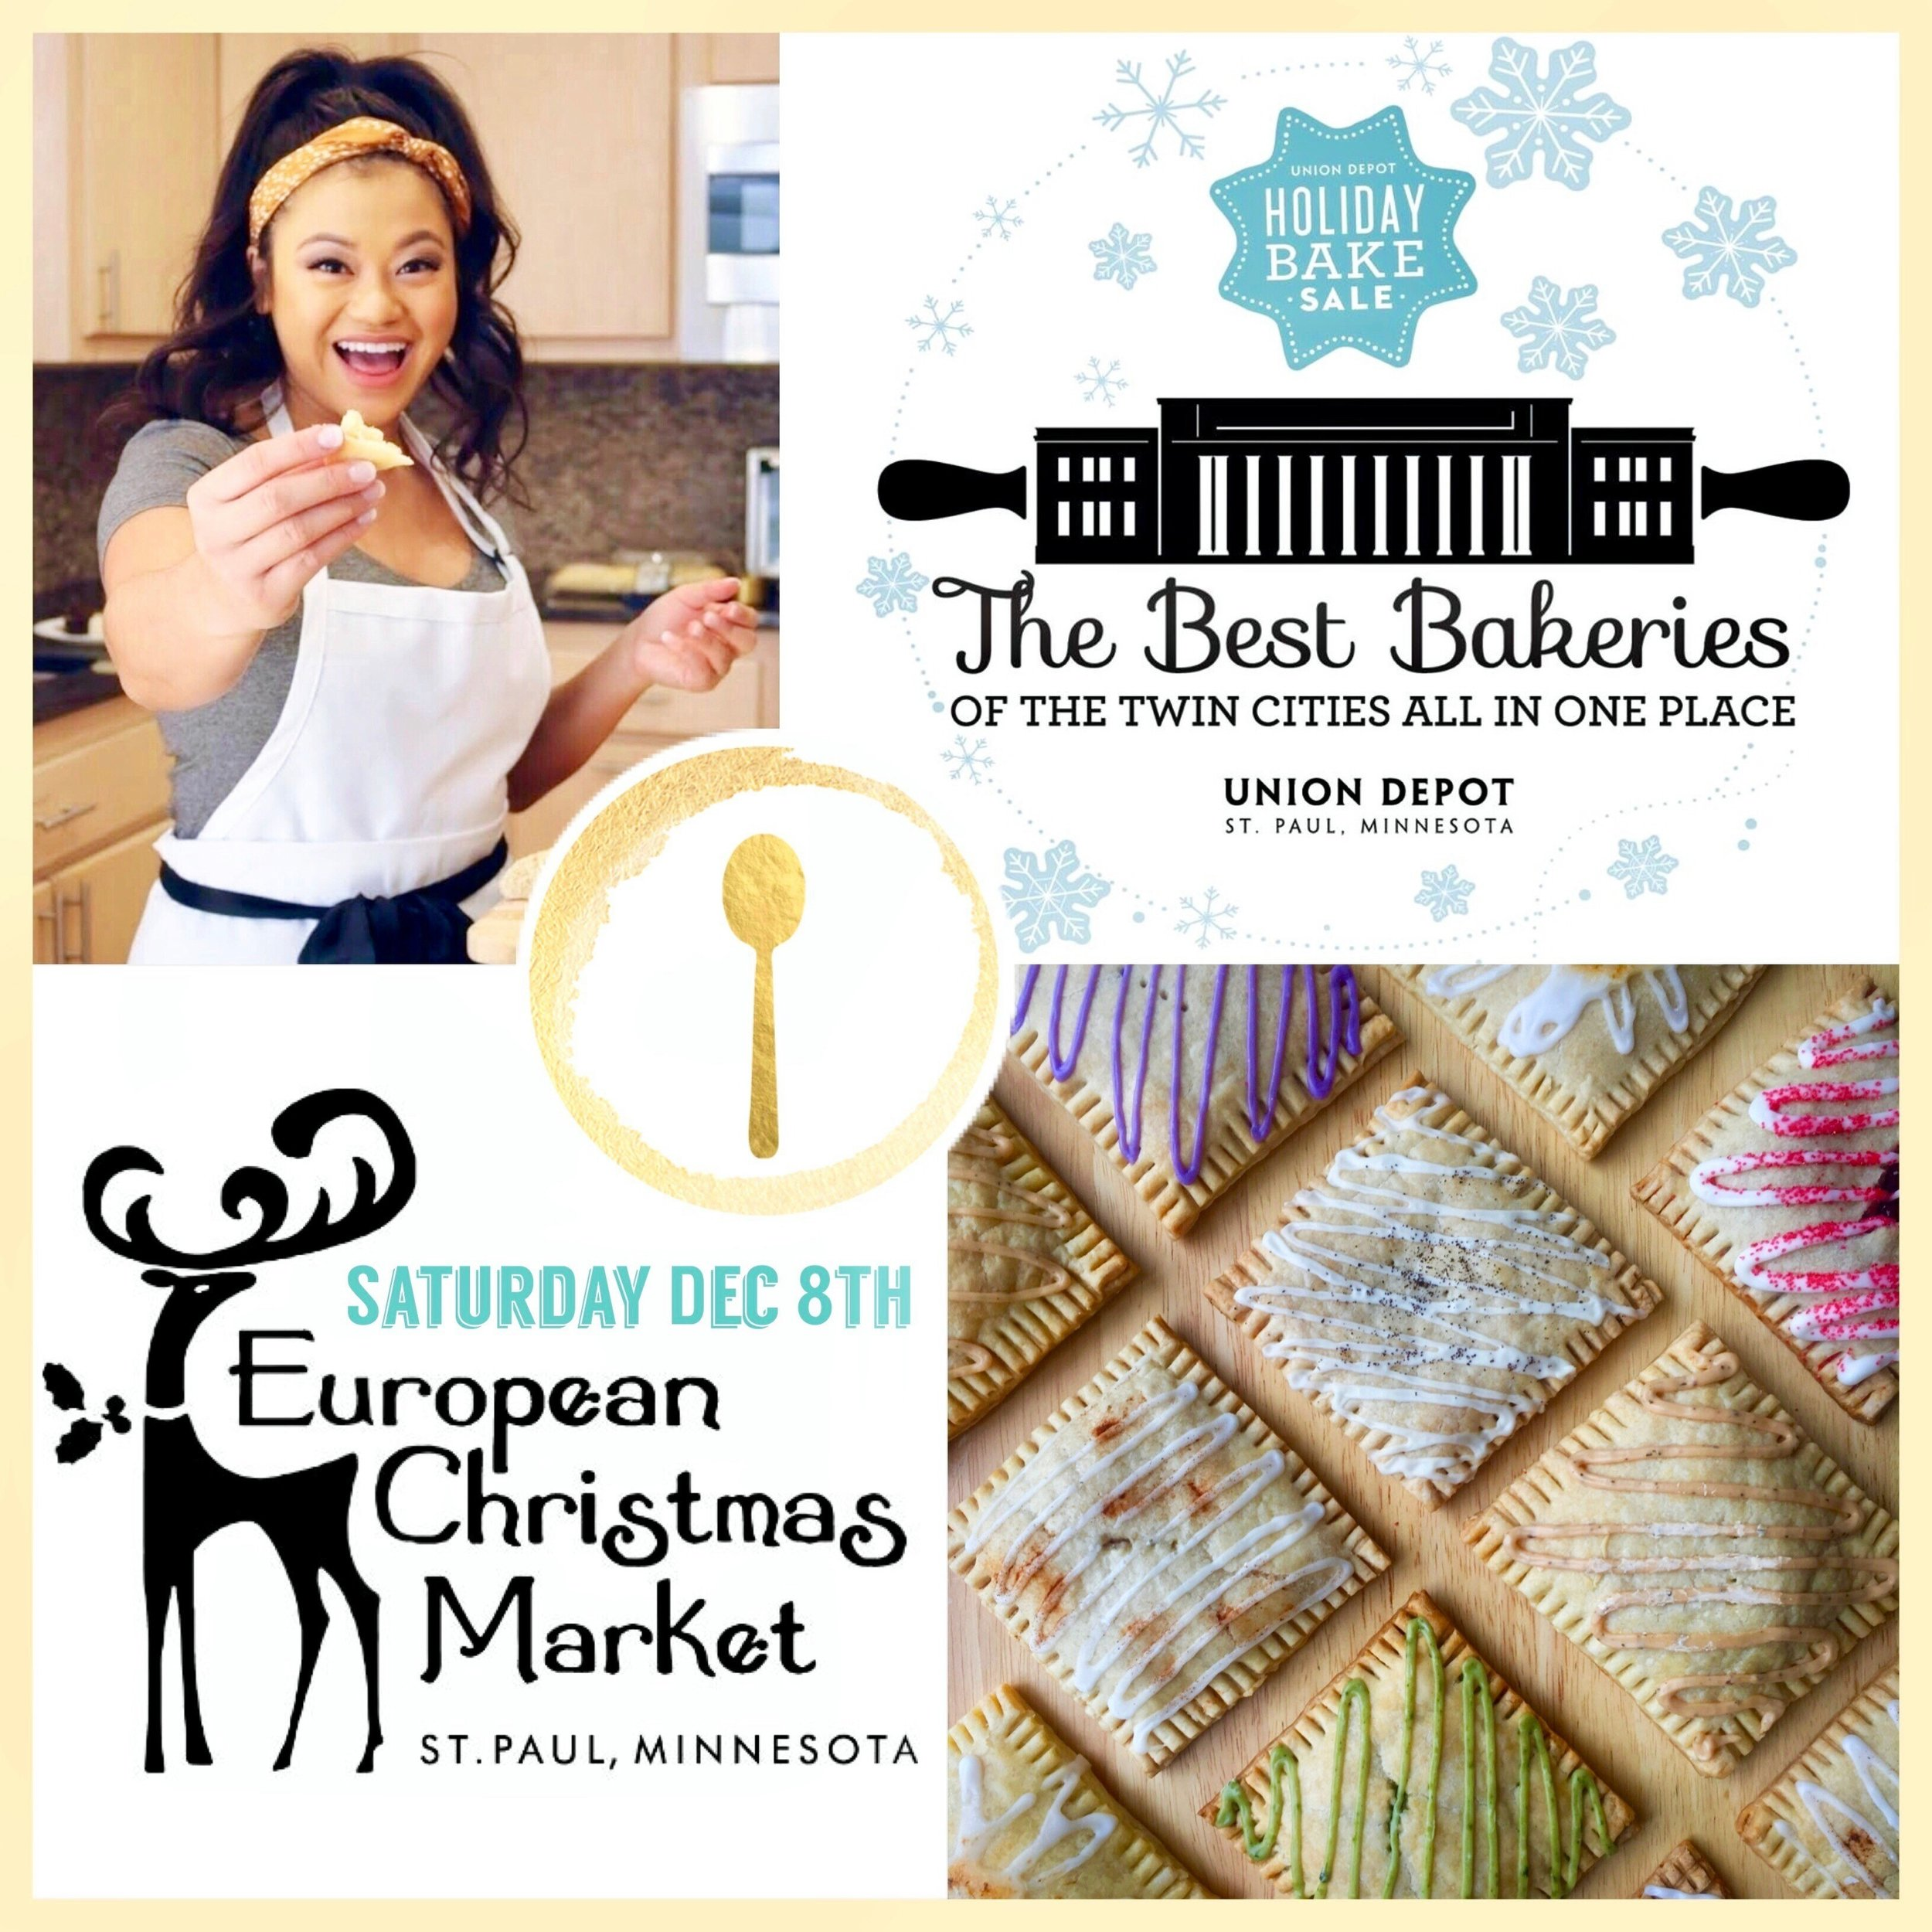 Visit us in-person! Saturday Dec 8th, 2019 - We are excited to announce that we are one of the new vendors at the Union Depot 2018 Holiday Bake Sale! There will be 30+ other local bakeries selling holiday goodies. This is your chance to purchase our most popular flavors, individually! We are located in the Union Depot Station in St.Paul along side the other bakeries. Warm up from the outdoor European Christmas Market outside and take a few steps inside, for a sweet treat. Bake Sale is from 10am-5pm or until supplies last. We hope to see you there! Cheers!